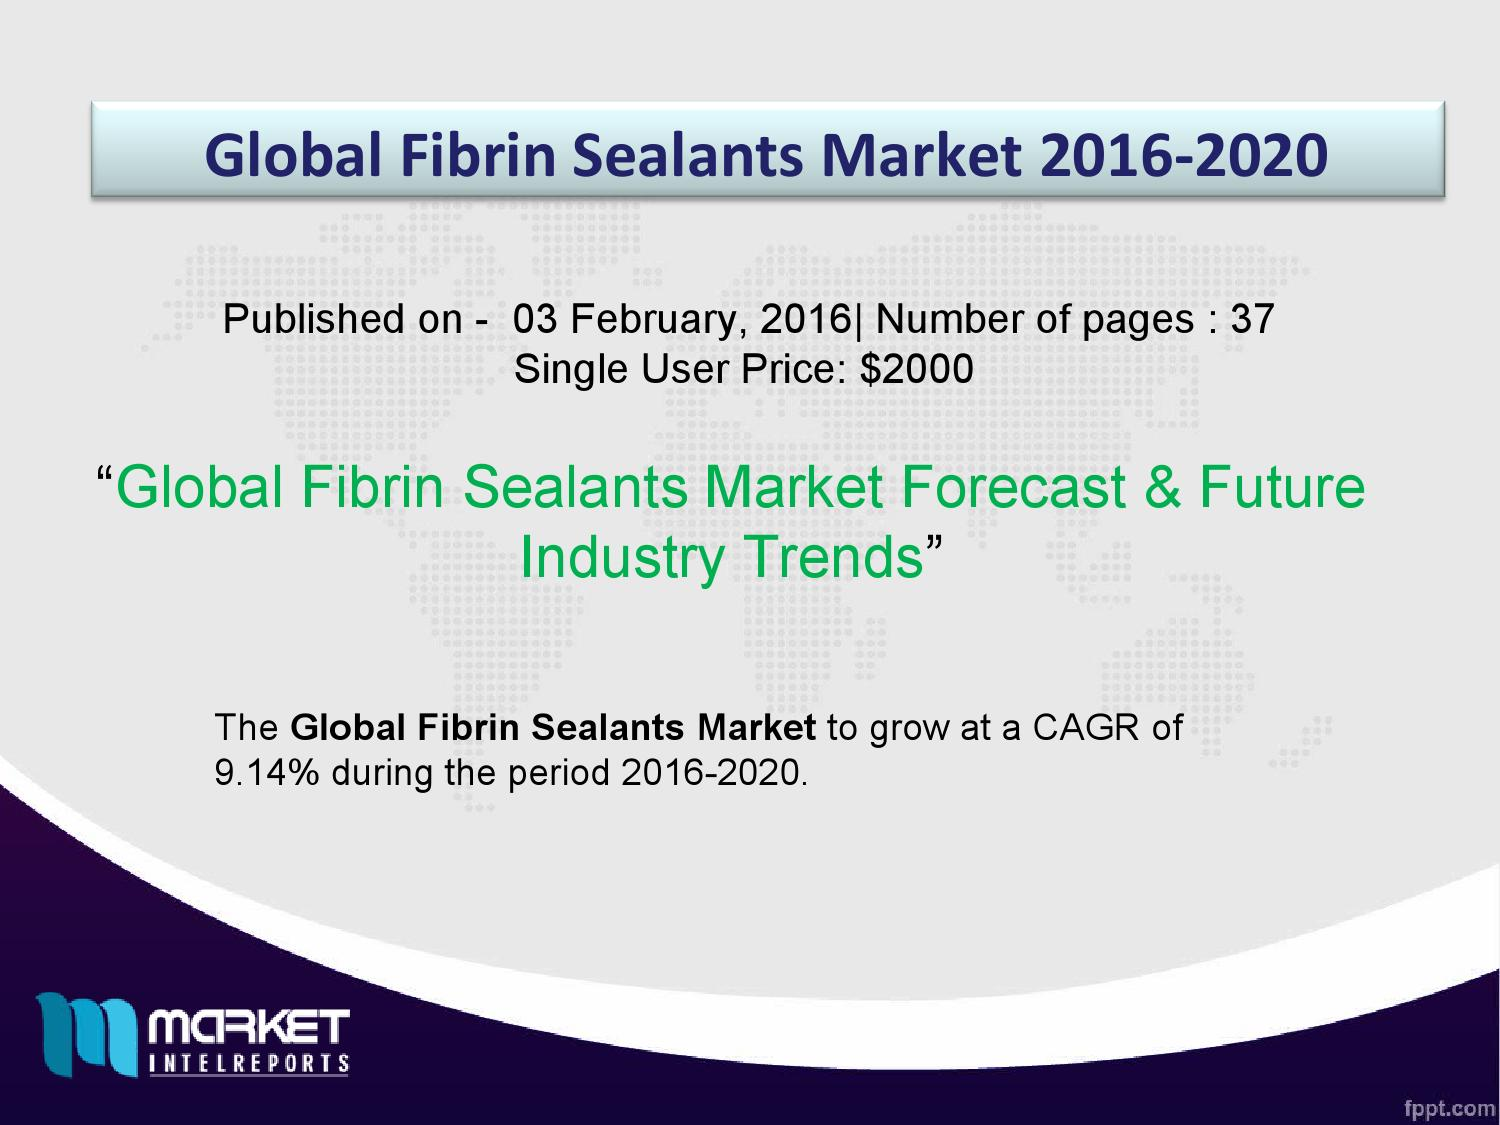 2020 Competitor Analysis & Market Trends for Global Fibrin